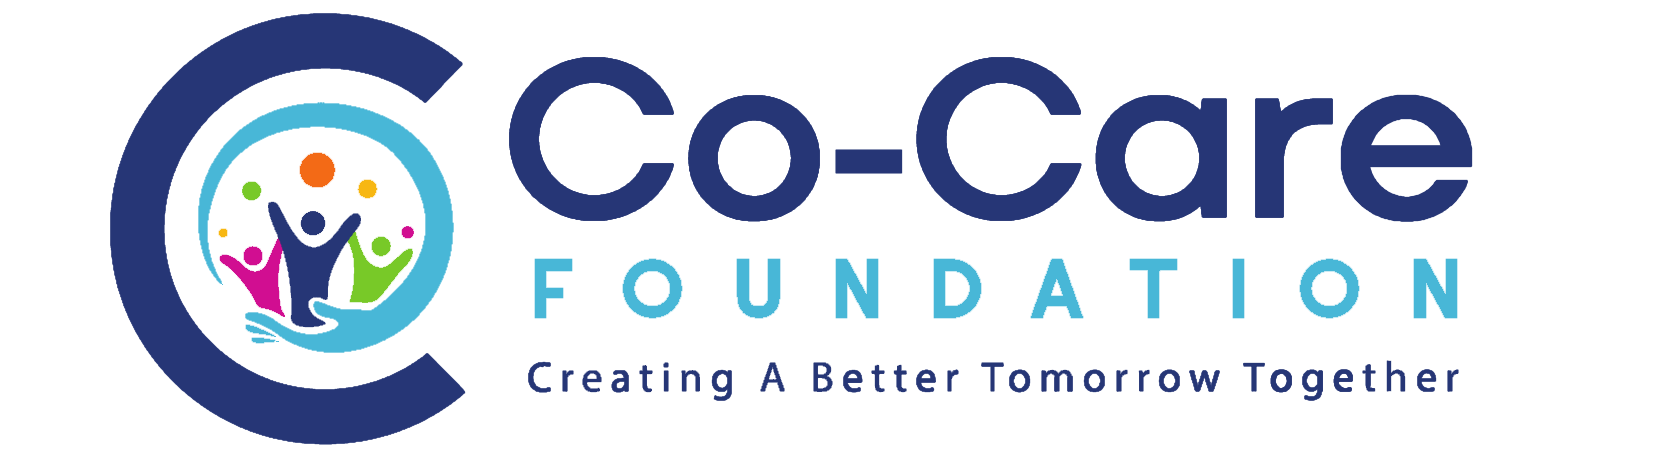 Co-Care Foundation